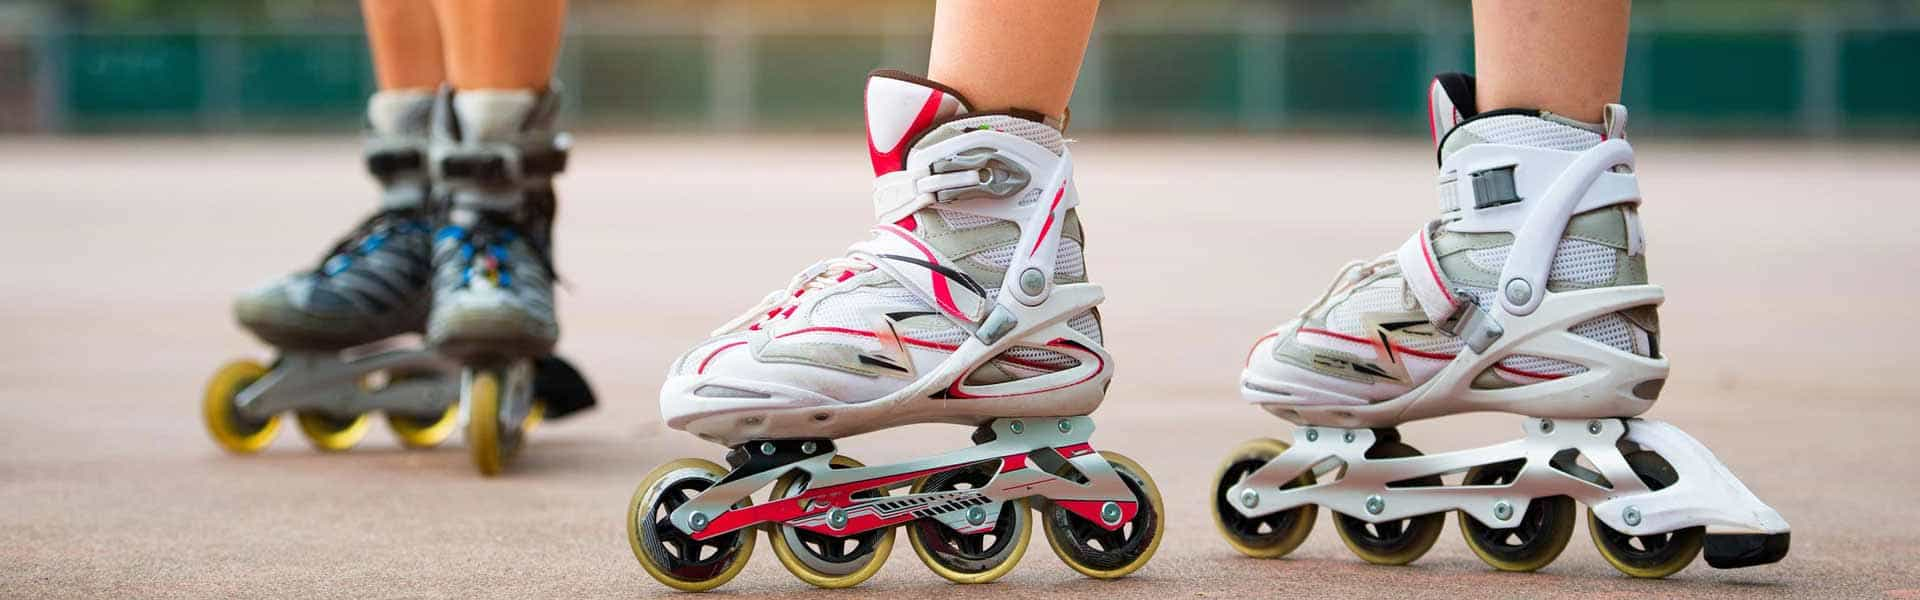 Best Rollerblades For 2018 – Buying Guide and Reviews